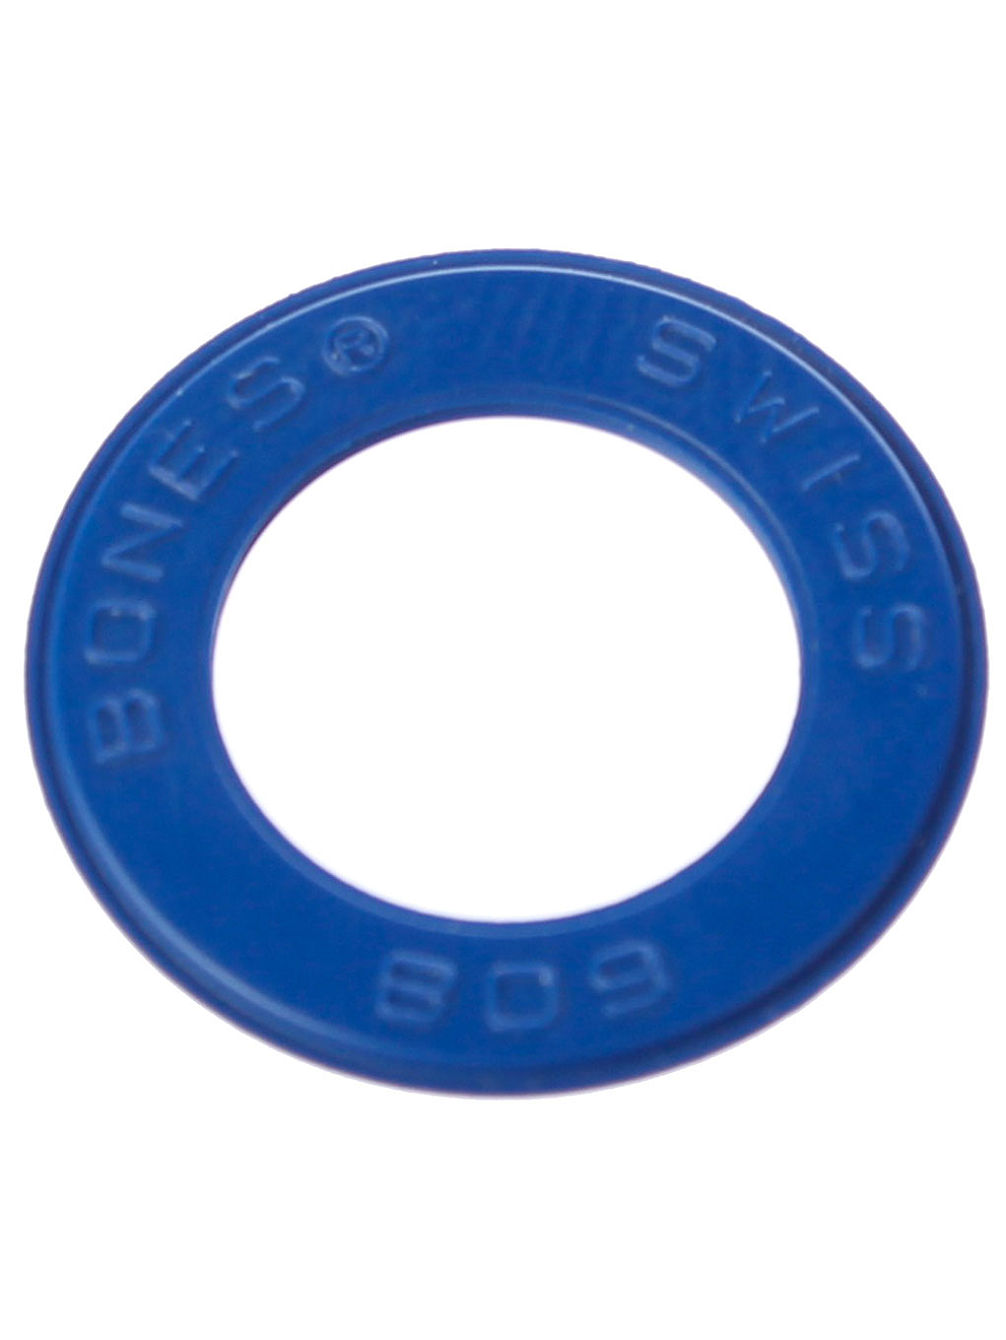 6 Ball Replacement Shield Bearings